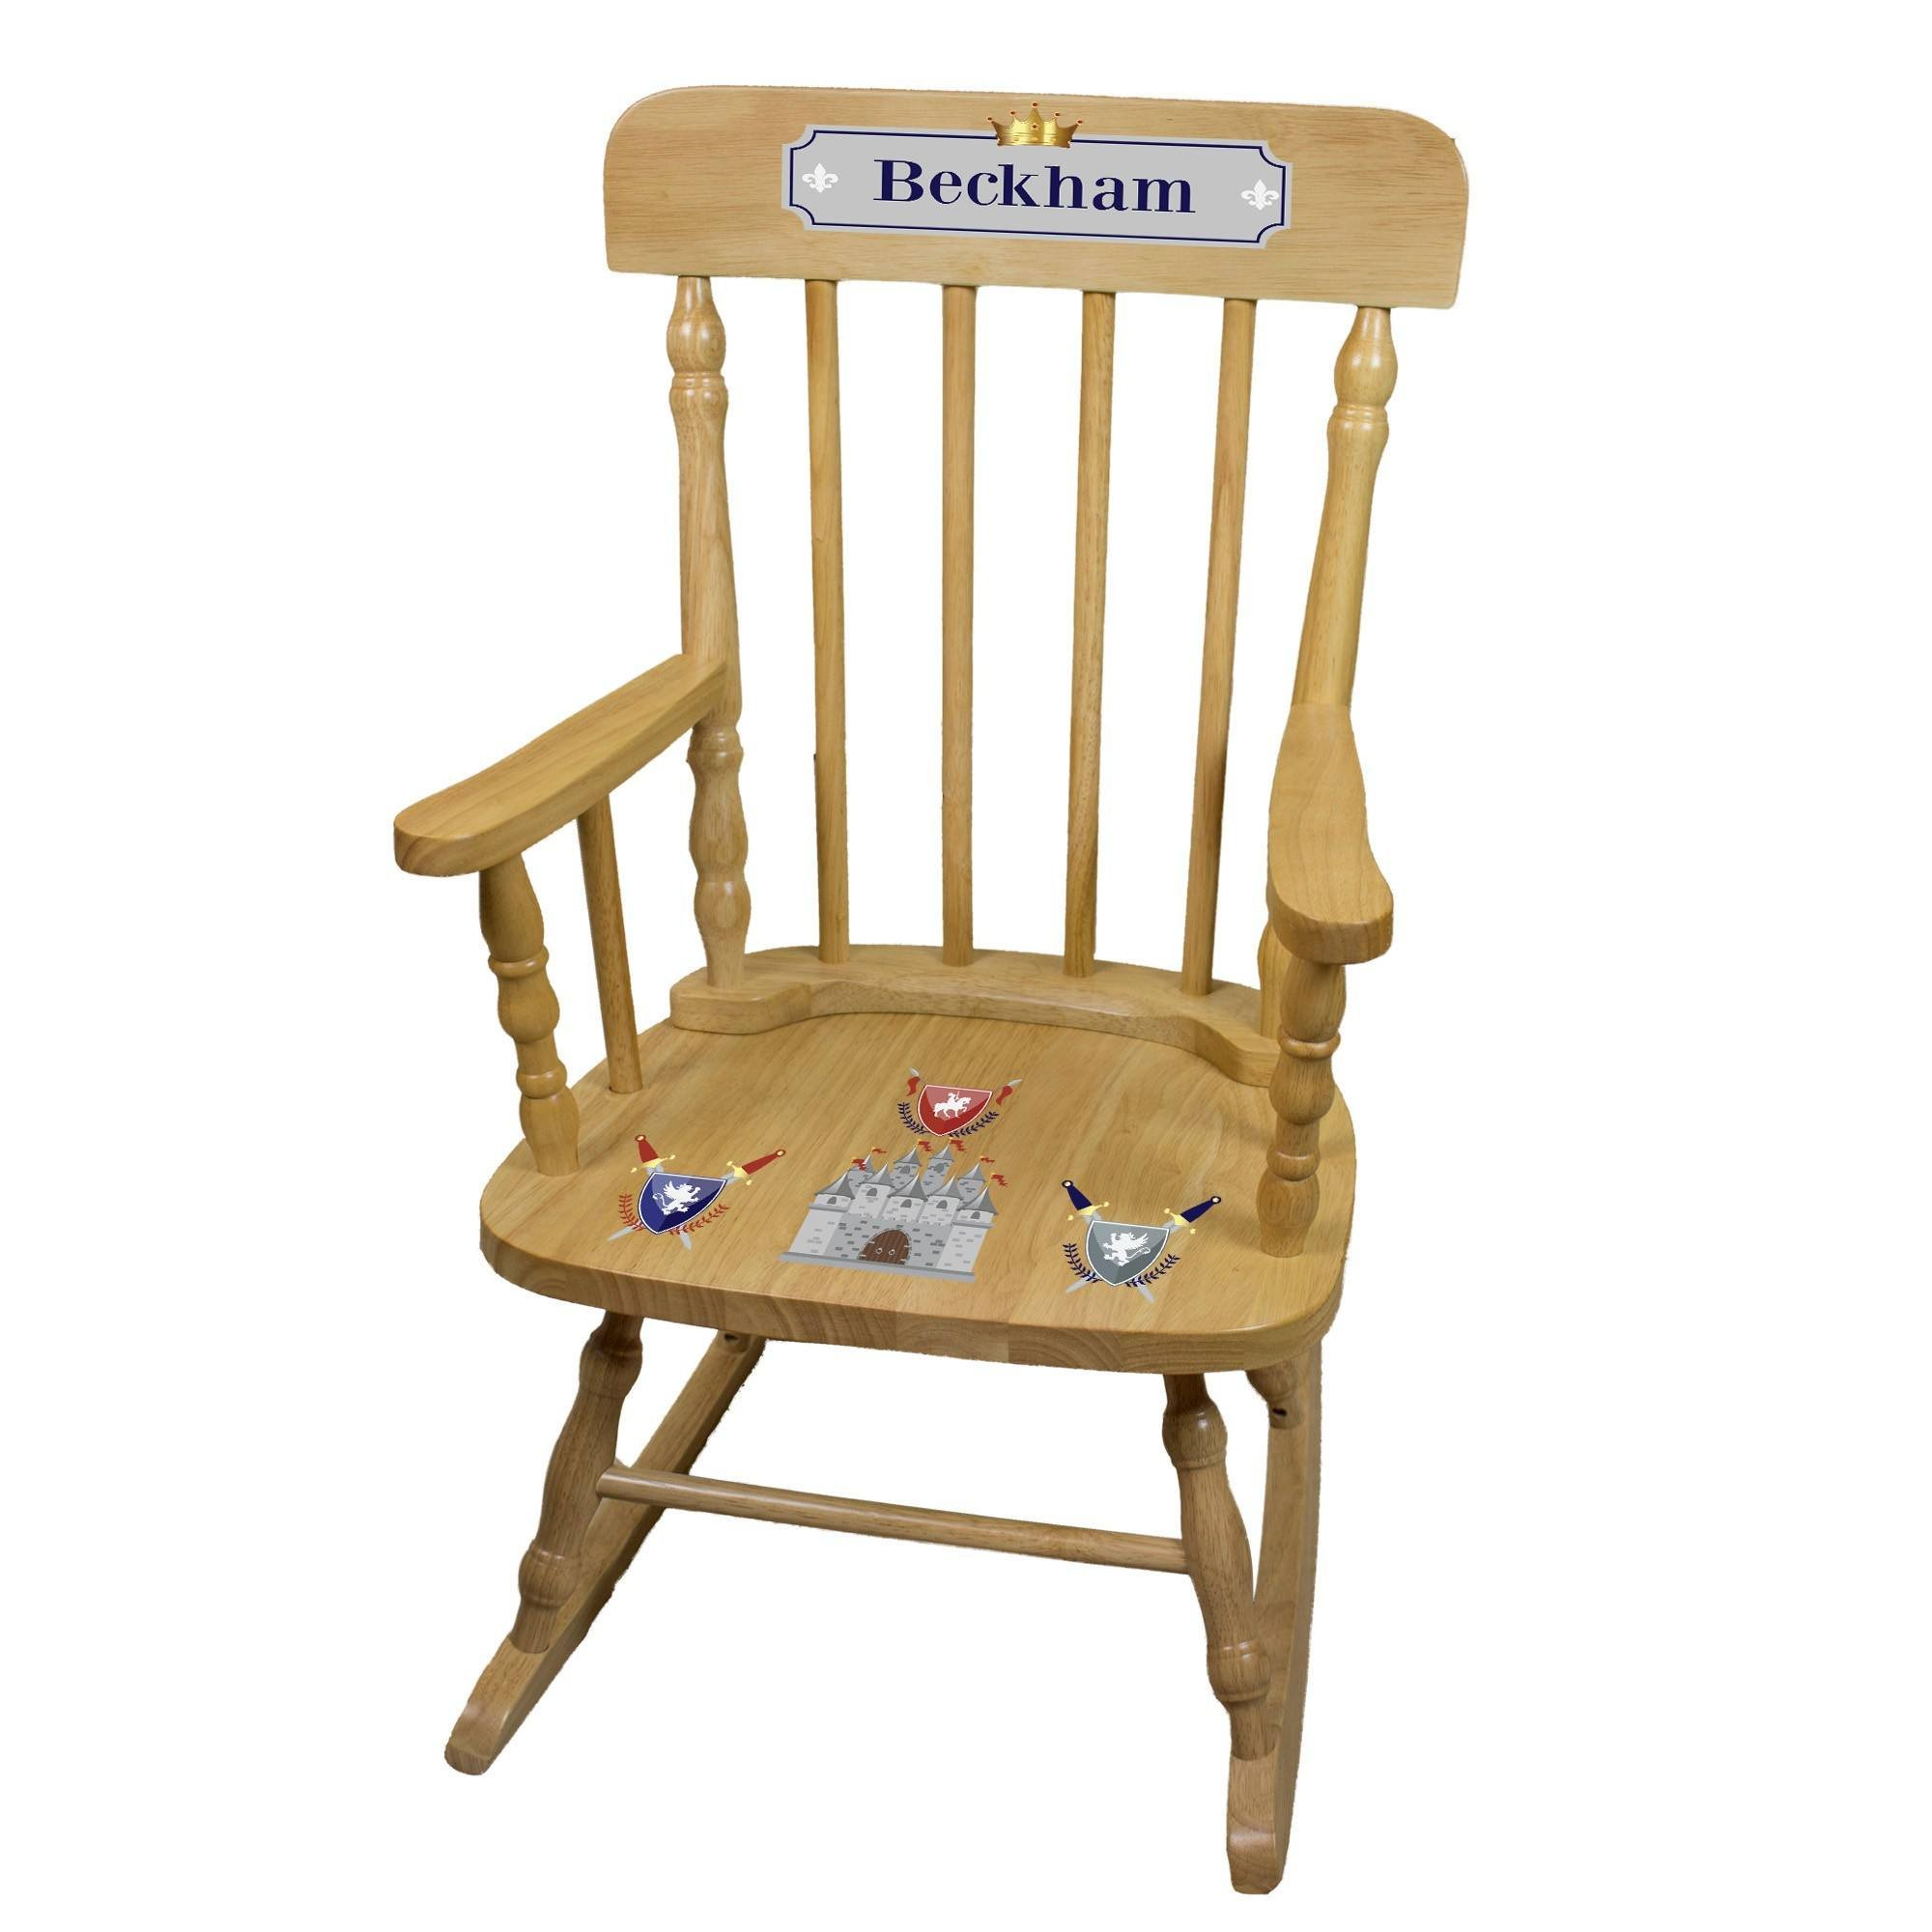 MyBambino Personalized Medieval Castle Natural Wooden Childrens Rocking Chair